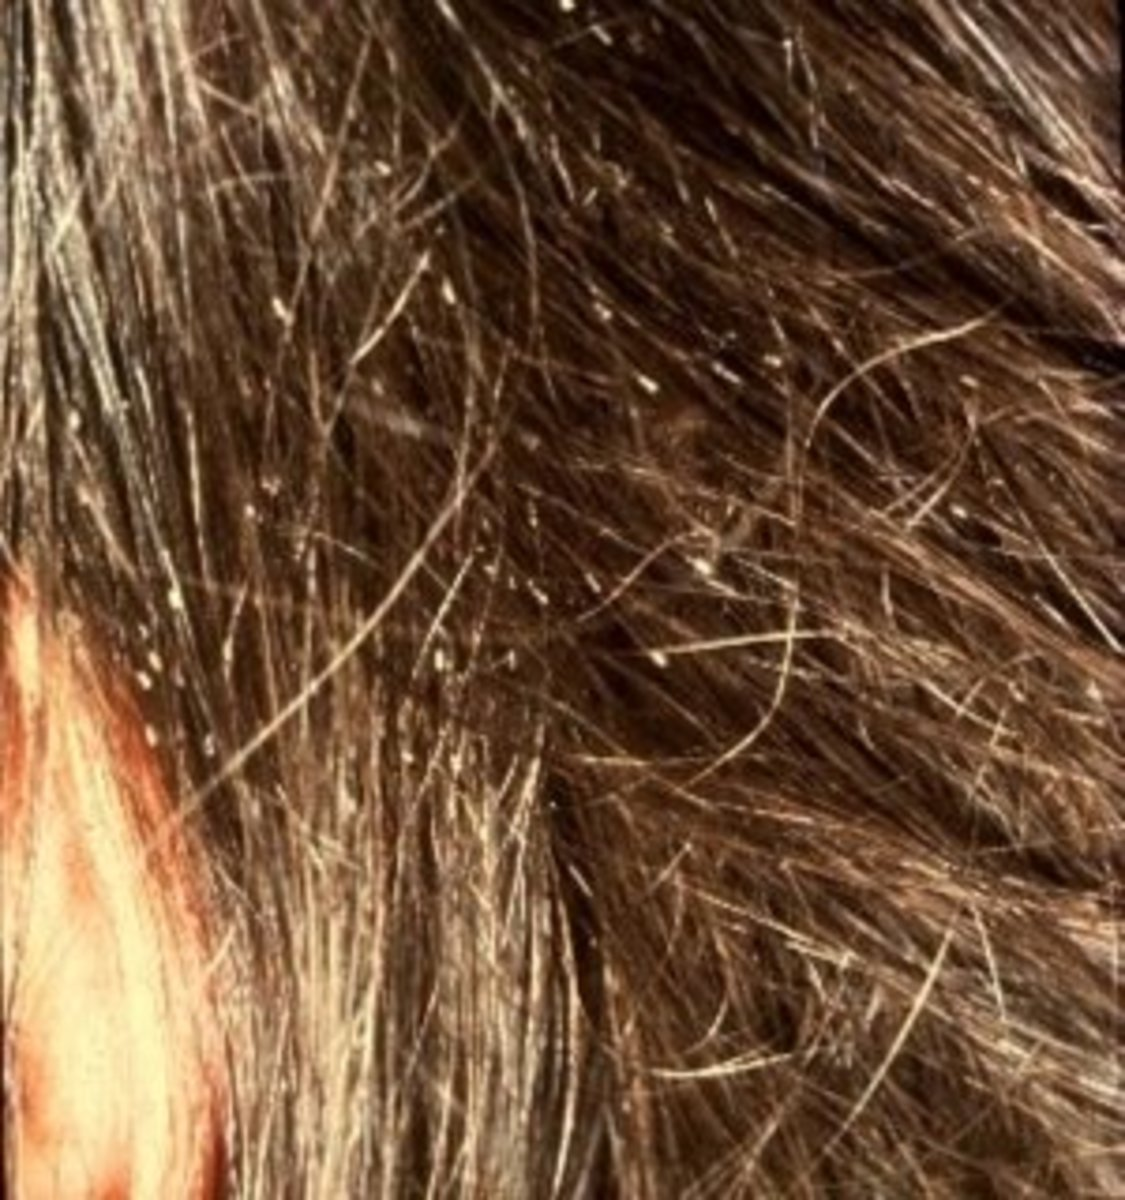 Close up of nits in a girl's hair